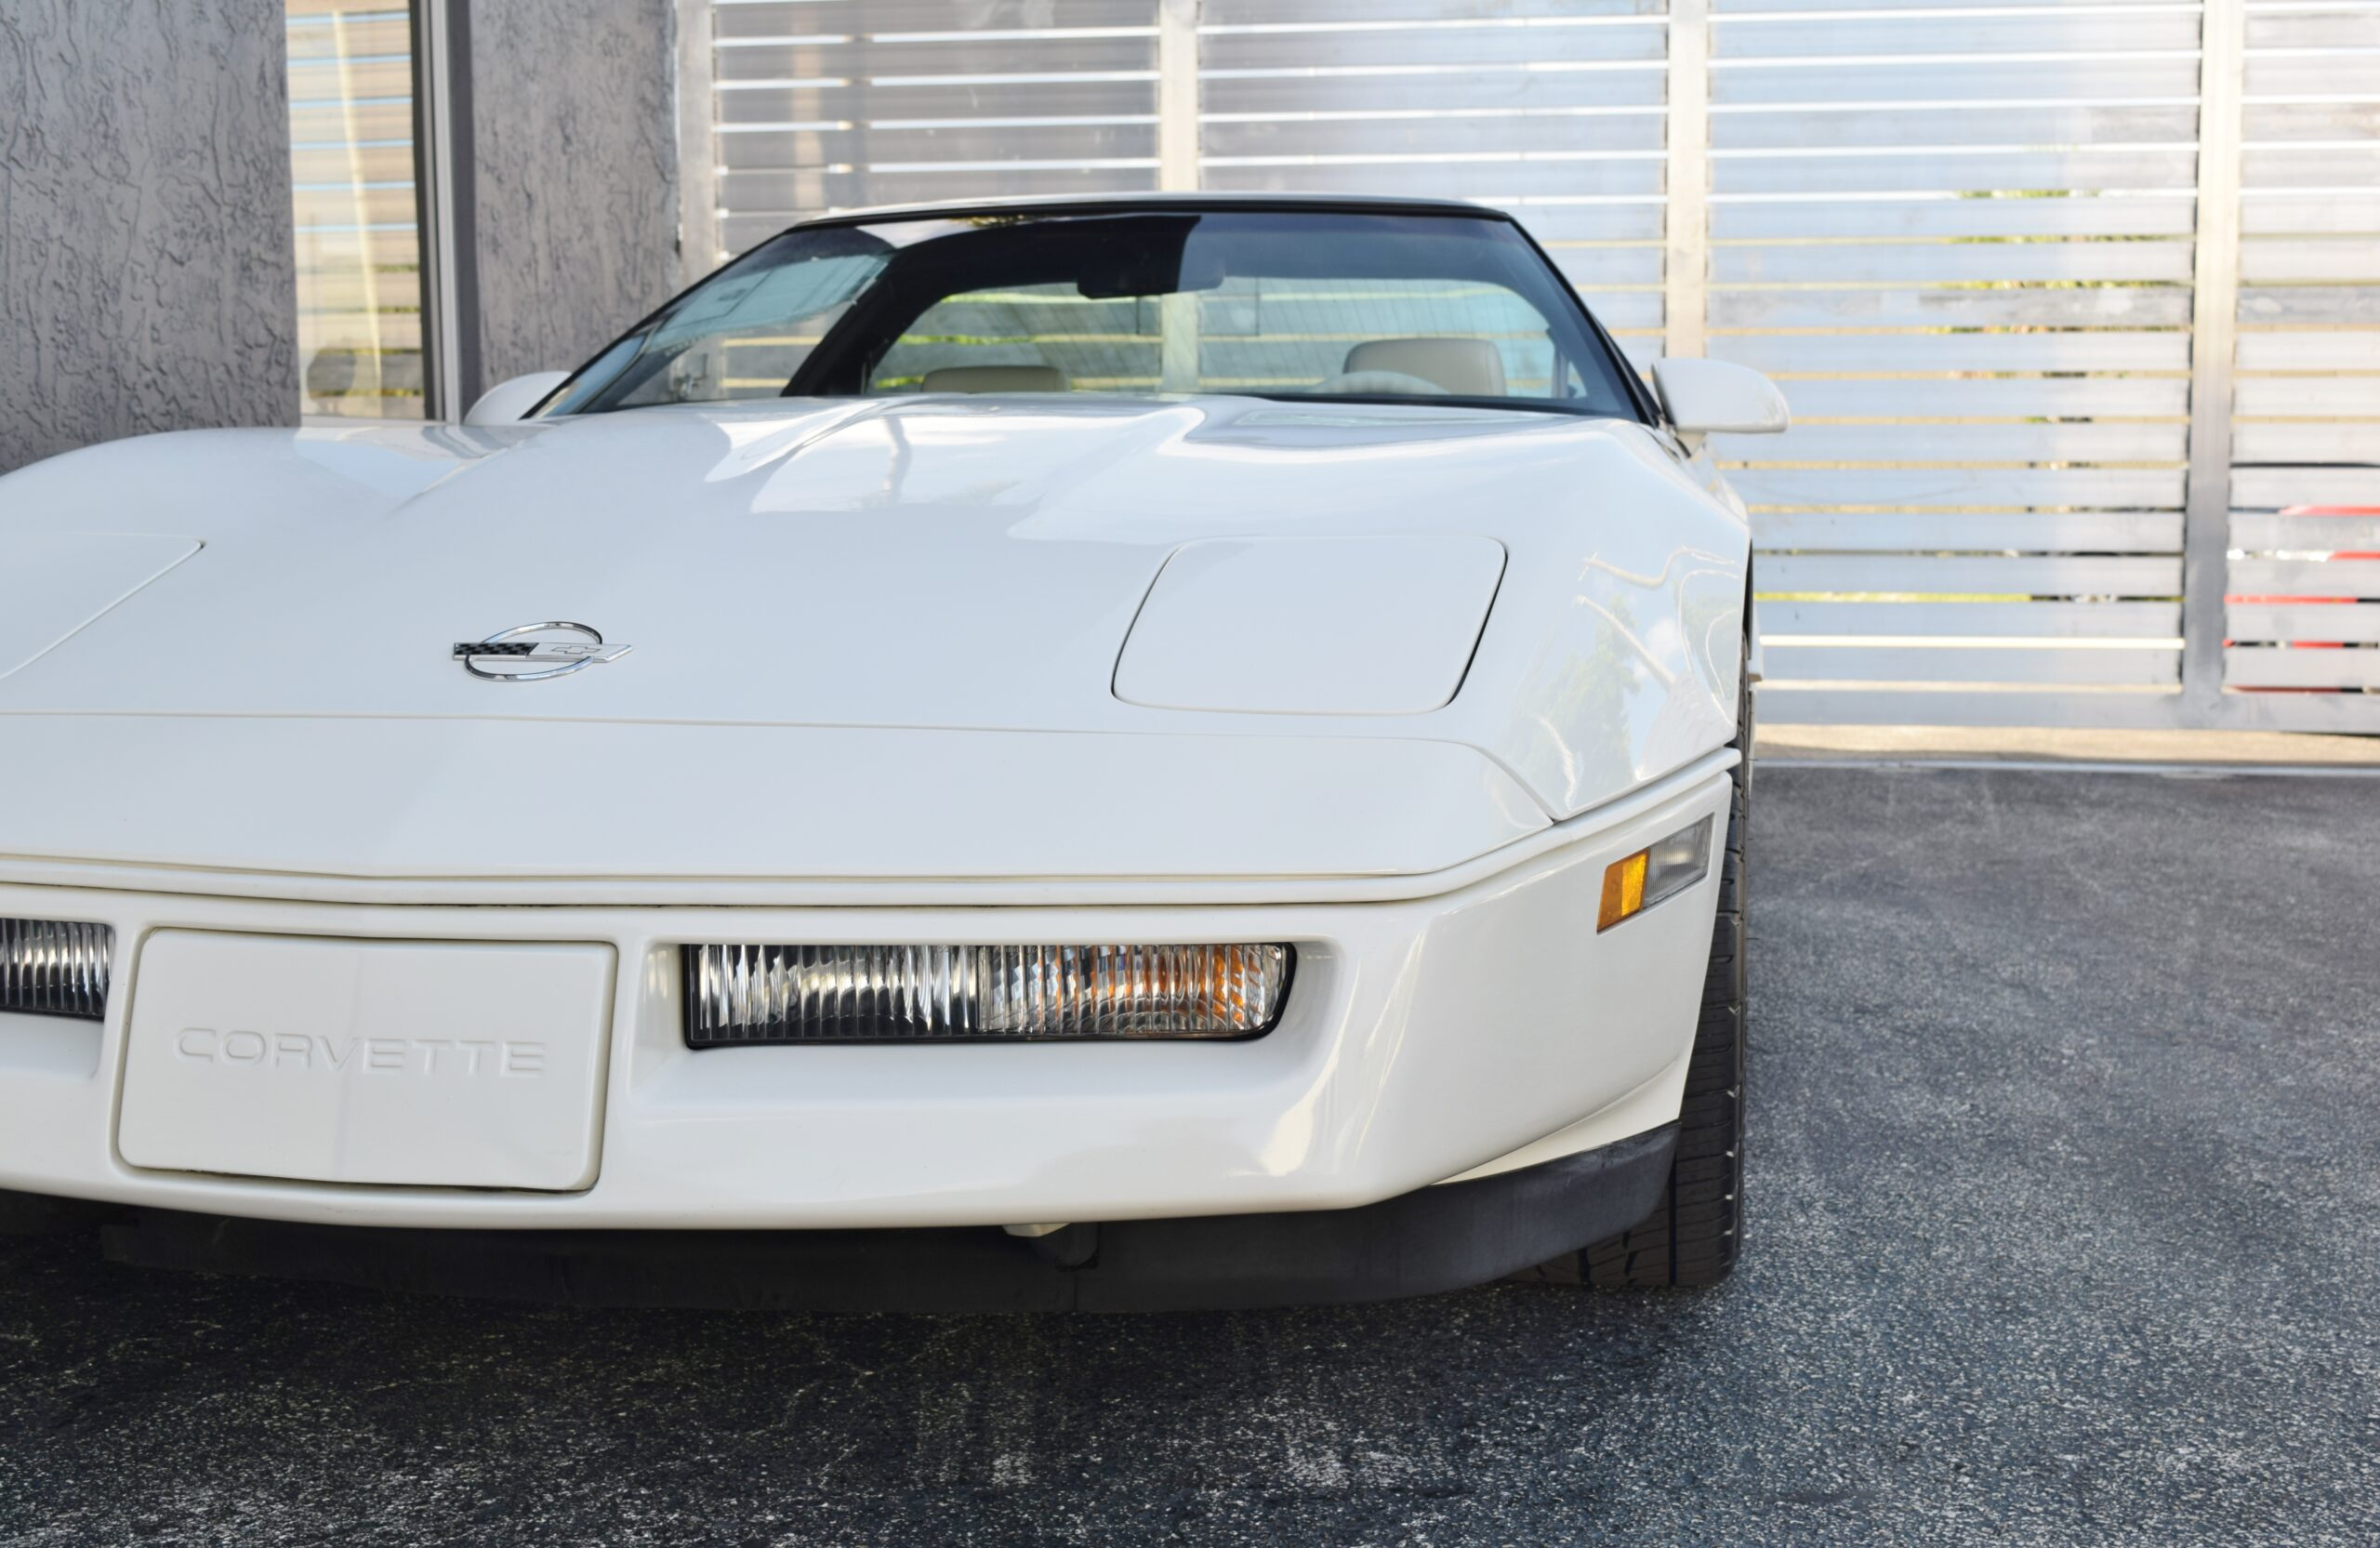 1988 Chevrolet Corvette 35th Anniversary Edition Only 6287 miles- Collector Quality- Rare 4+ 3 Manual Gearbox- Fully Documented